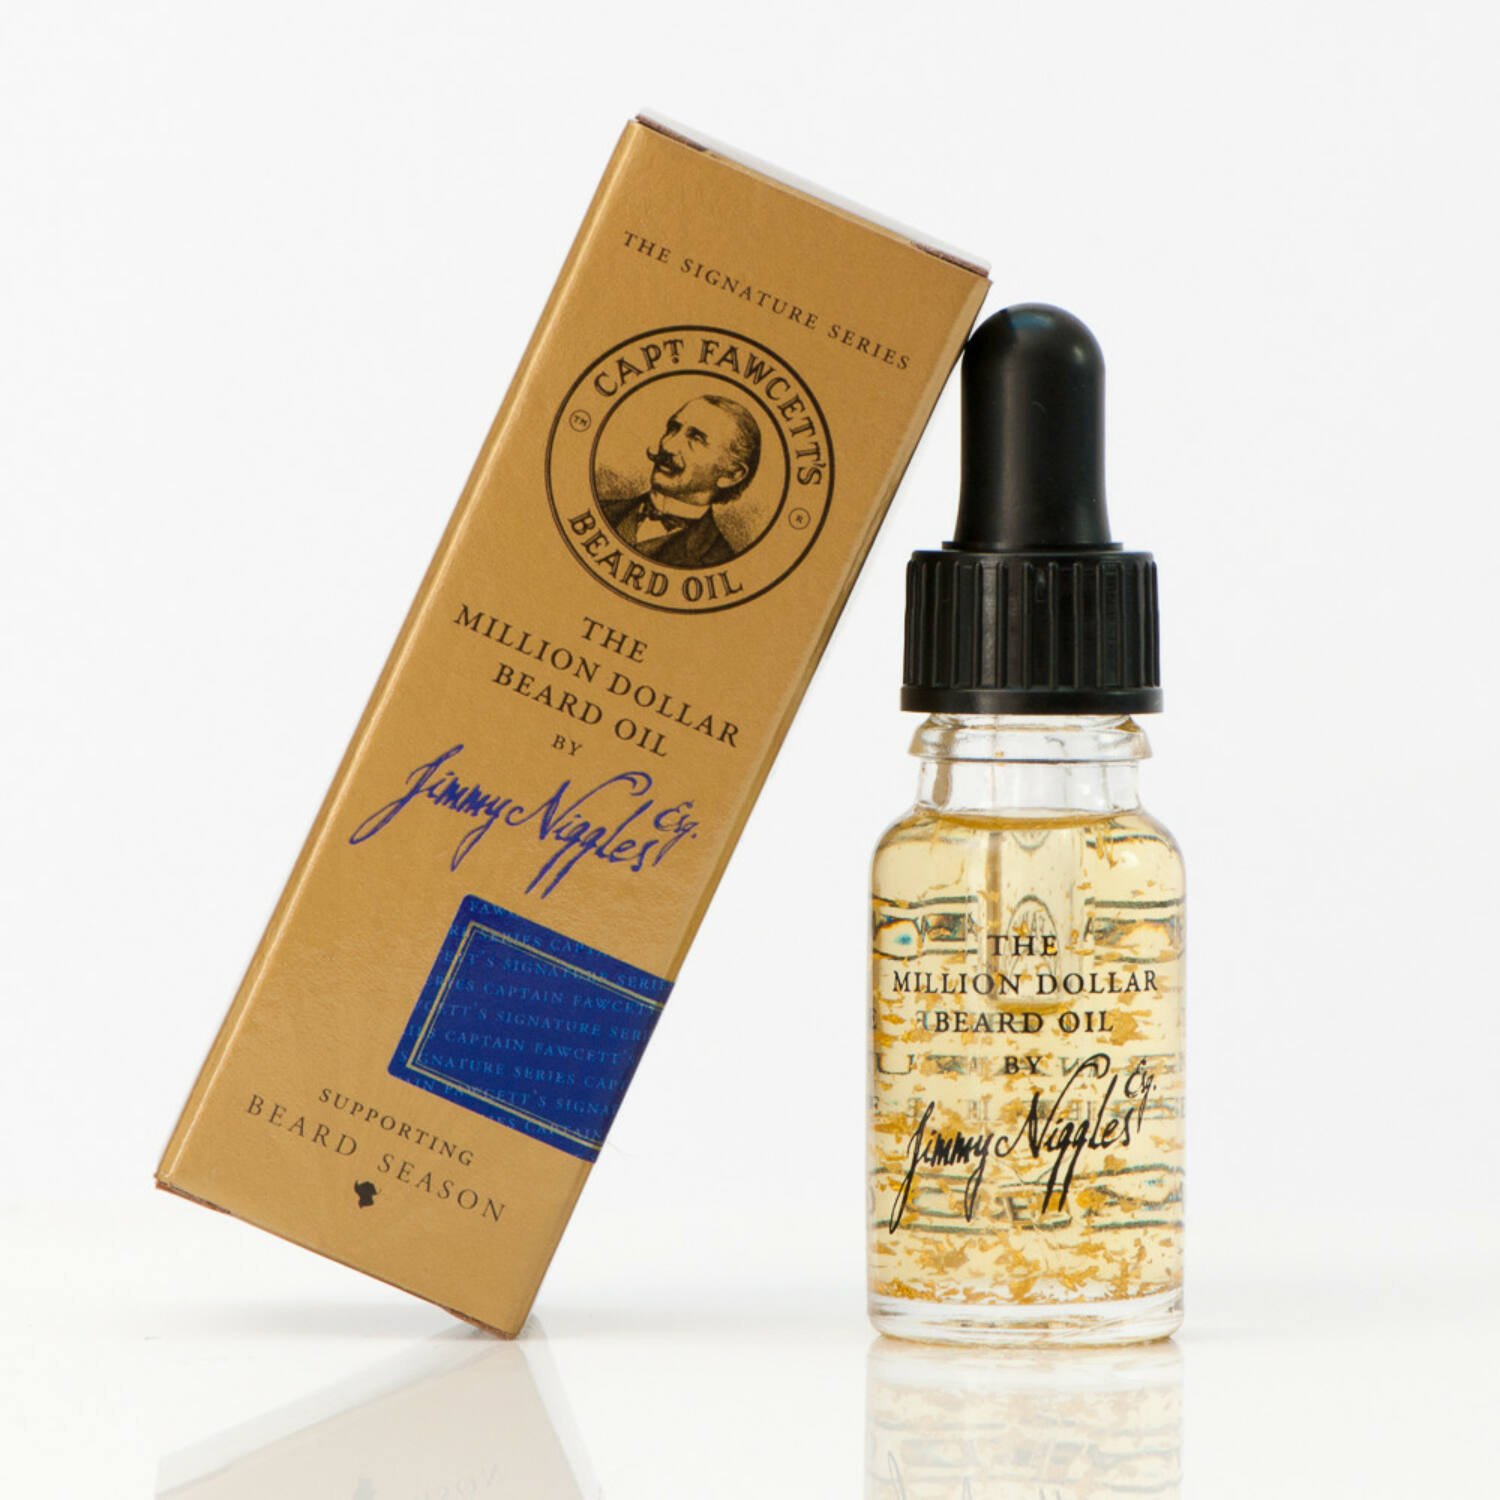 Captain Fawcett The million dollar beard oil 10ml